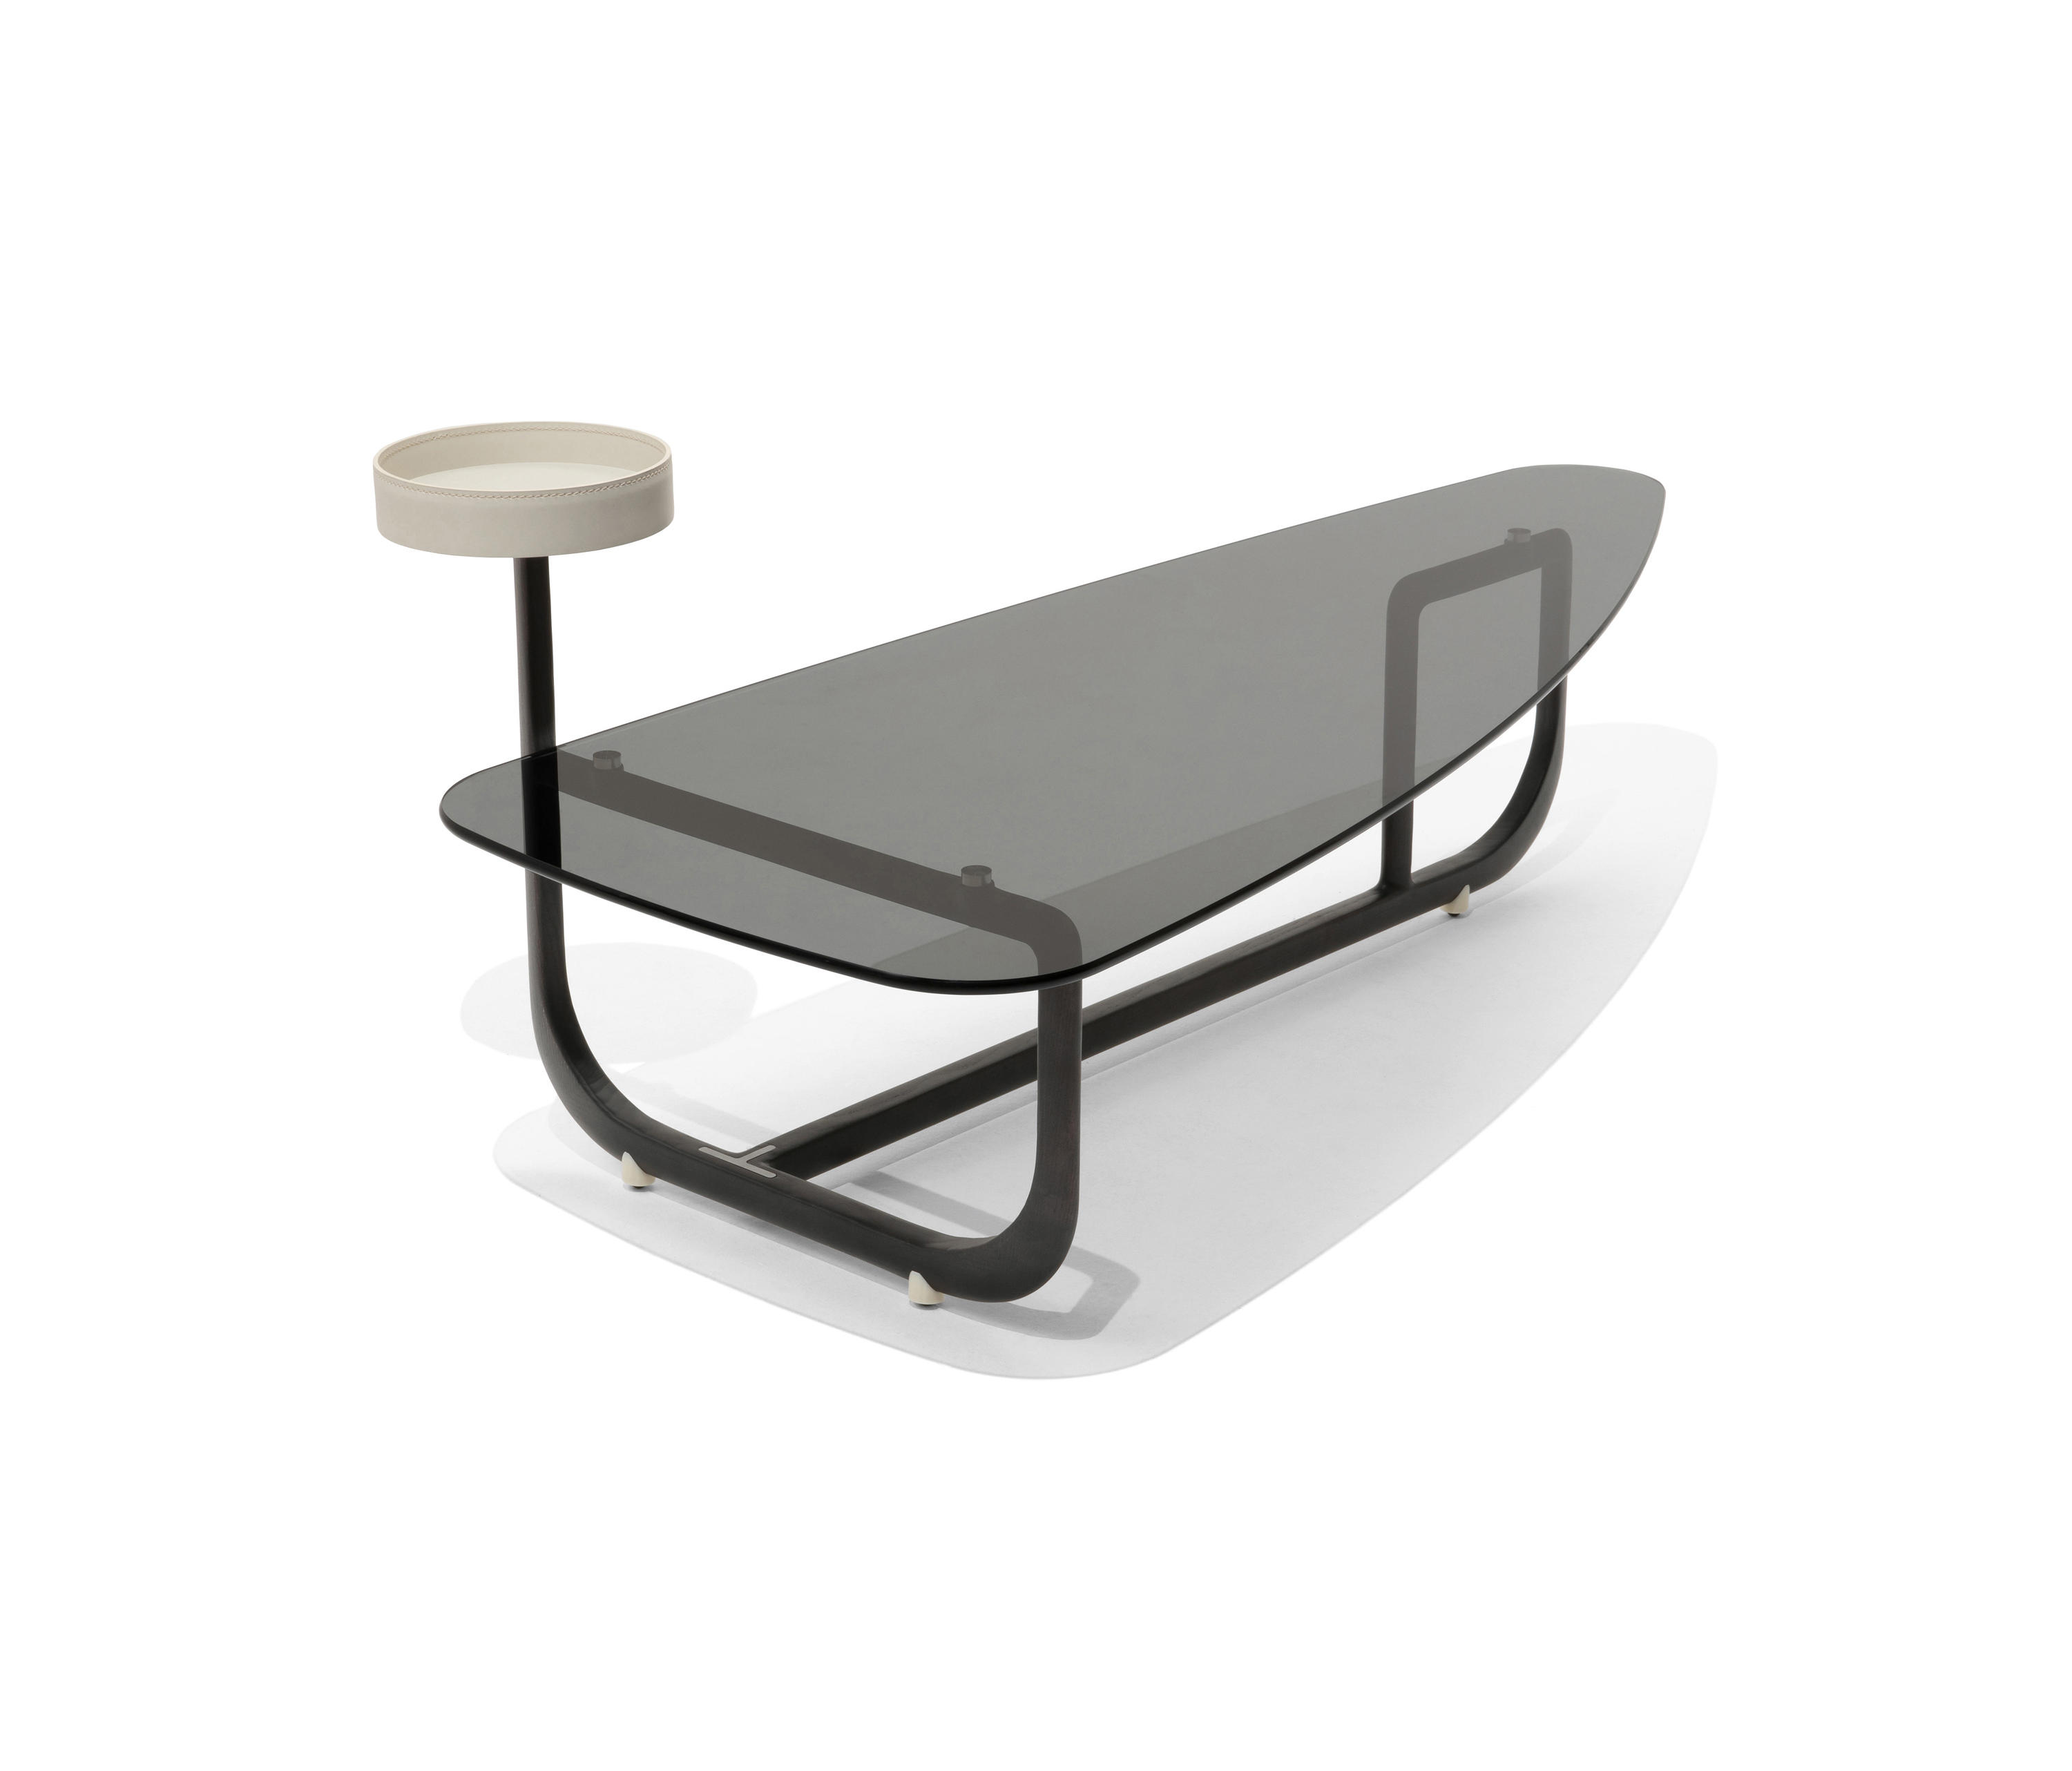 Amiral Low Table Designer Furniture Architonic